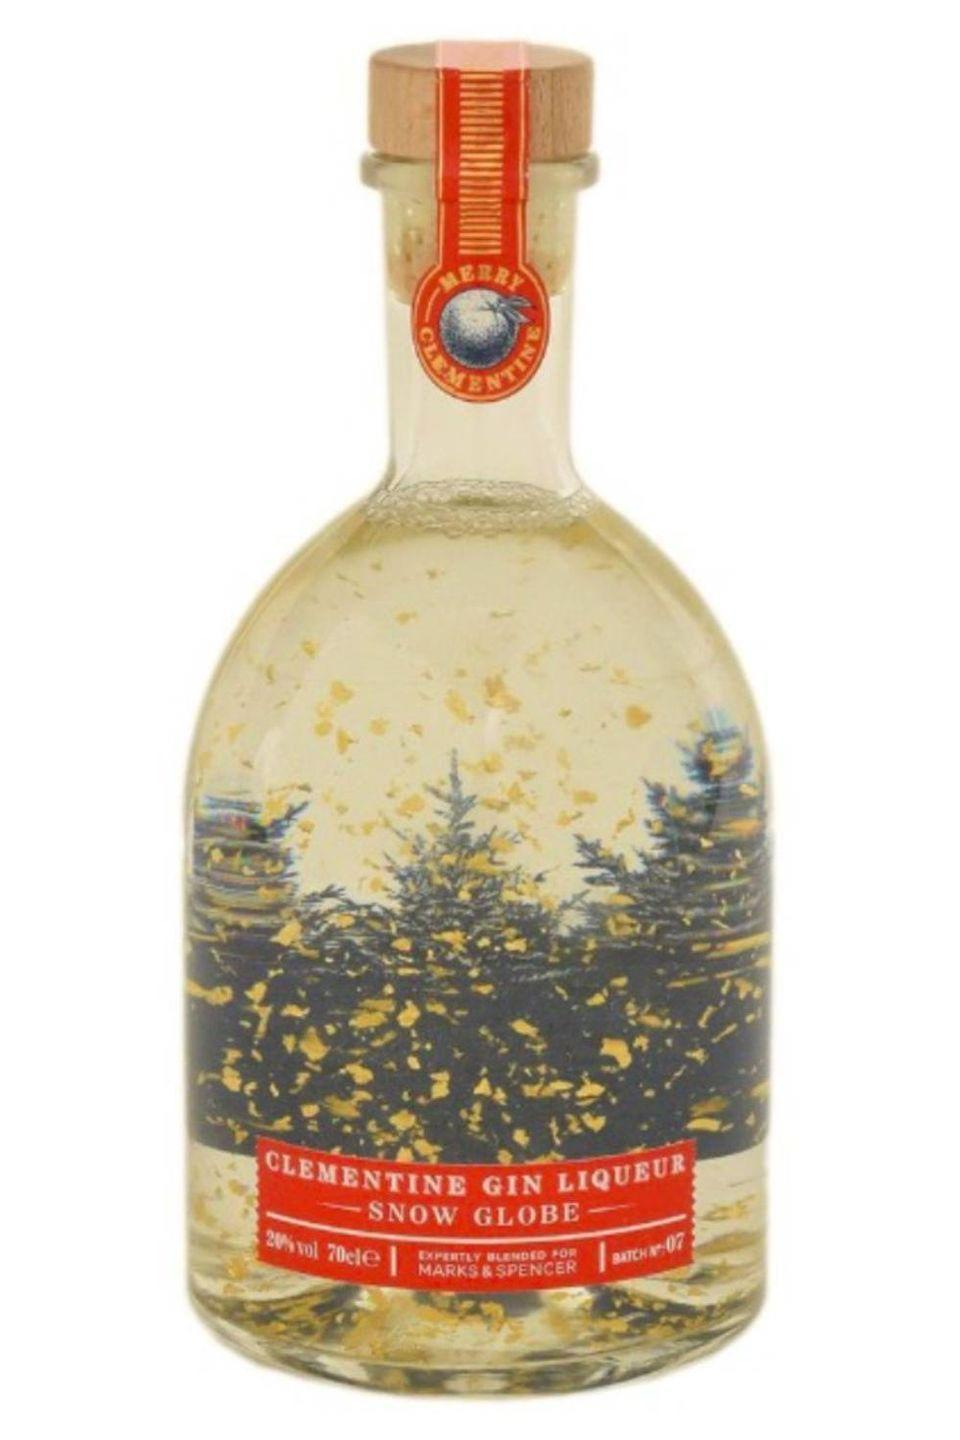 """<p>This Clementine Gin Liqueur Snow Globe is filled with edible 23 carat gold leaf pieces. Yep, 23! Which means when the bottle is turned, the pieces float and create a sparkly, pretty snow globe. And the clementine flavouring just makes this the perfect Christmas gin. </p><p><strong>Available in <a href=""""https://www.marksandspencer.com/c/food-to-order/adventures-in-food/christmas-gin"""" rel=""""nofollow noopener"""" target=""""_blank"""" data-ylk=""""slk:M&S"""" class=""""link rapid-noclick-resp"""">M&S</a> stores </strong></p>"""